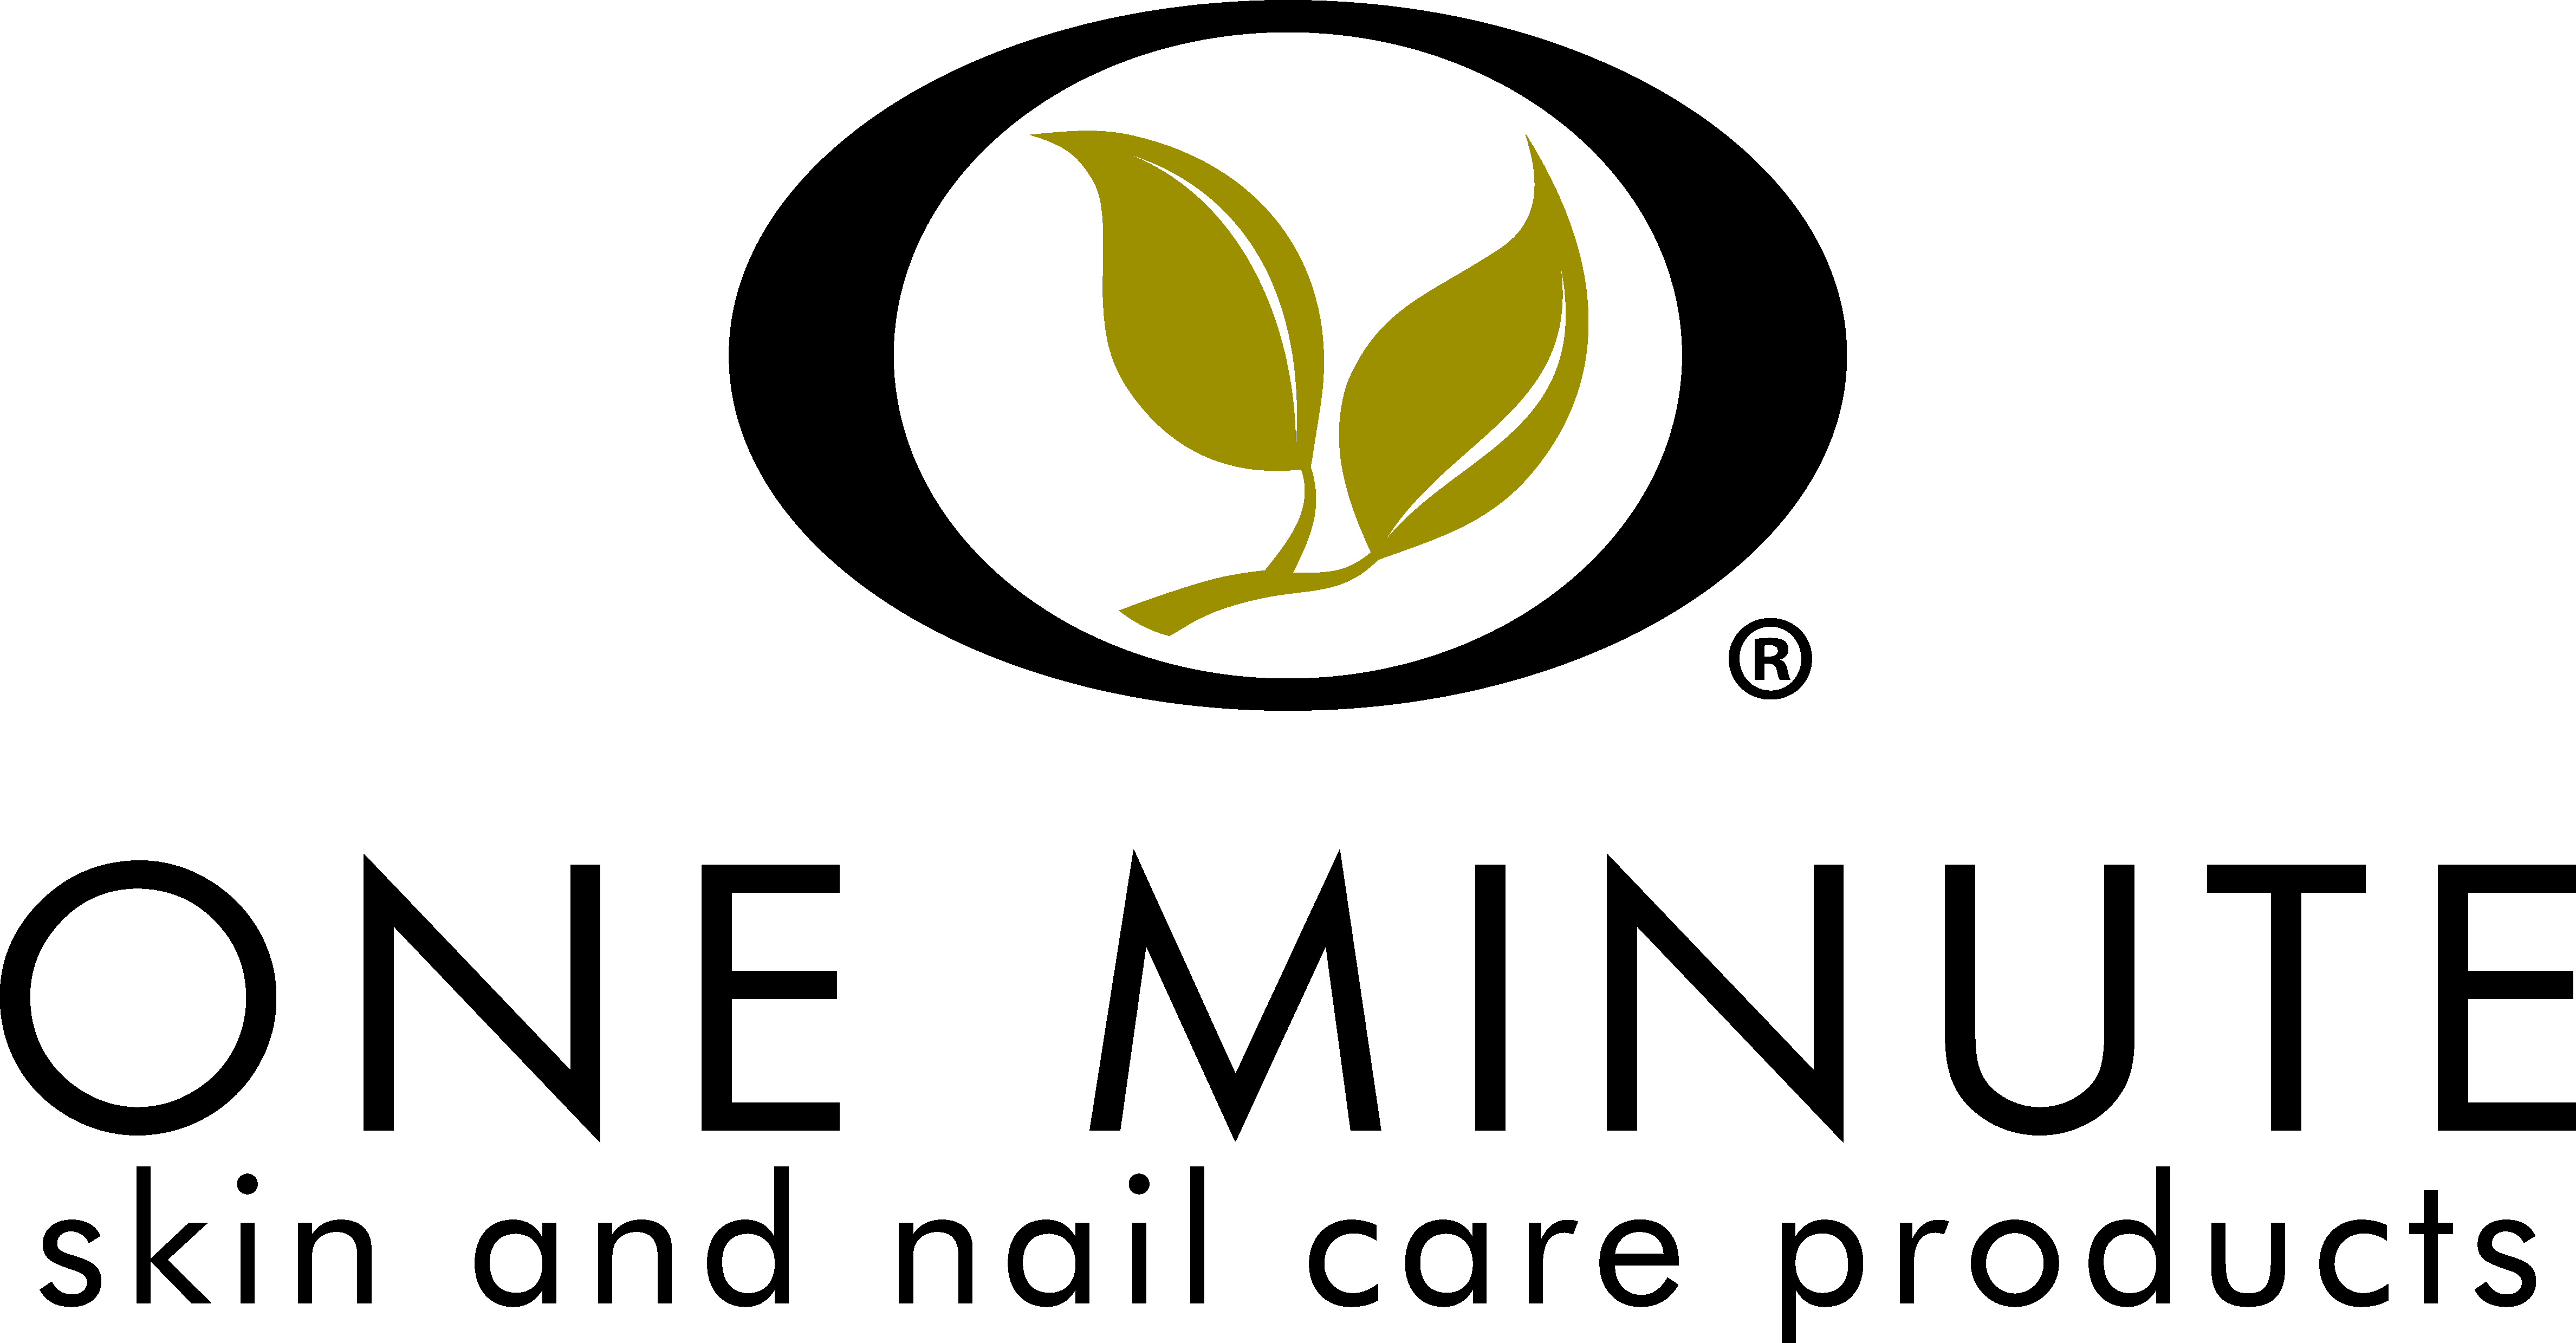 Skin and nail care products